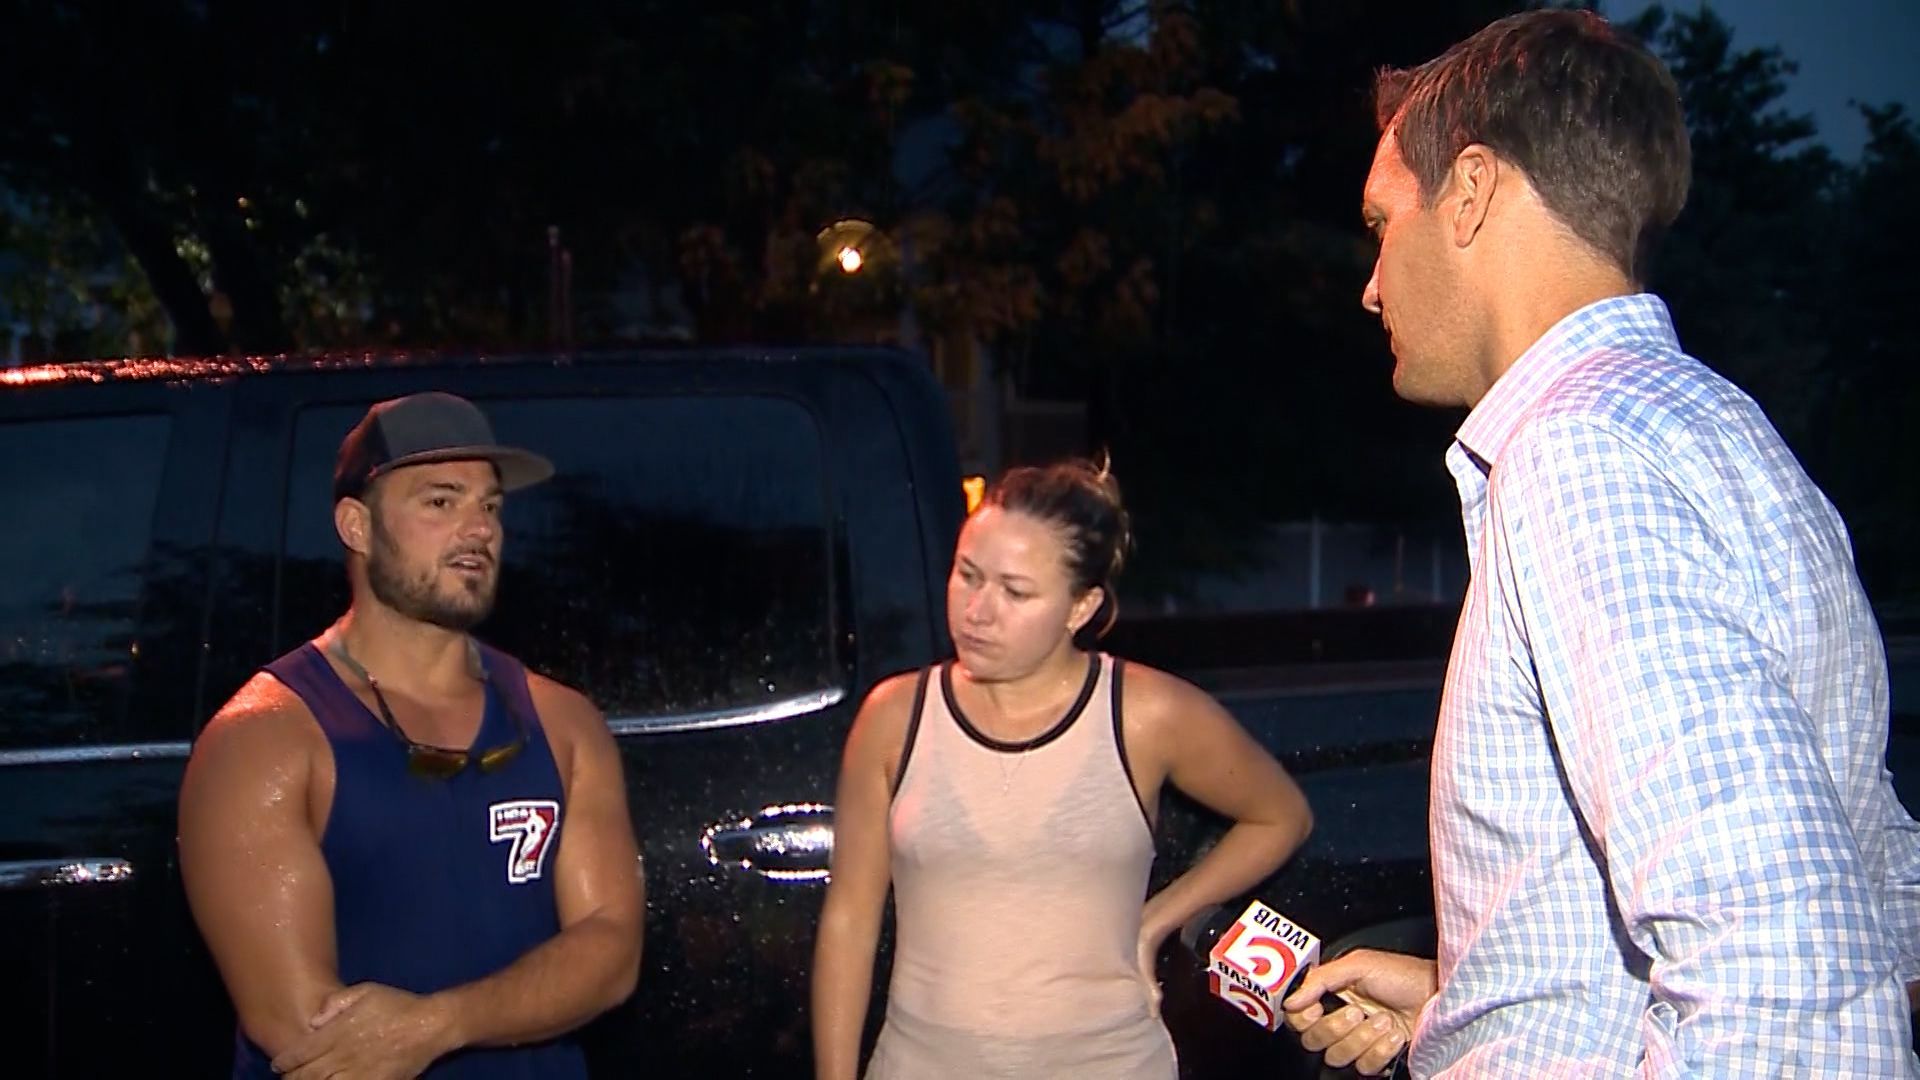 Couple rescues 3 people from Mystic River in Somerville during stormy weather